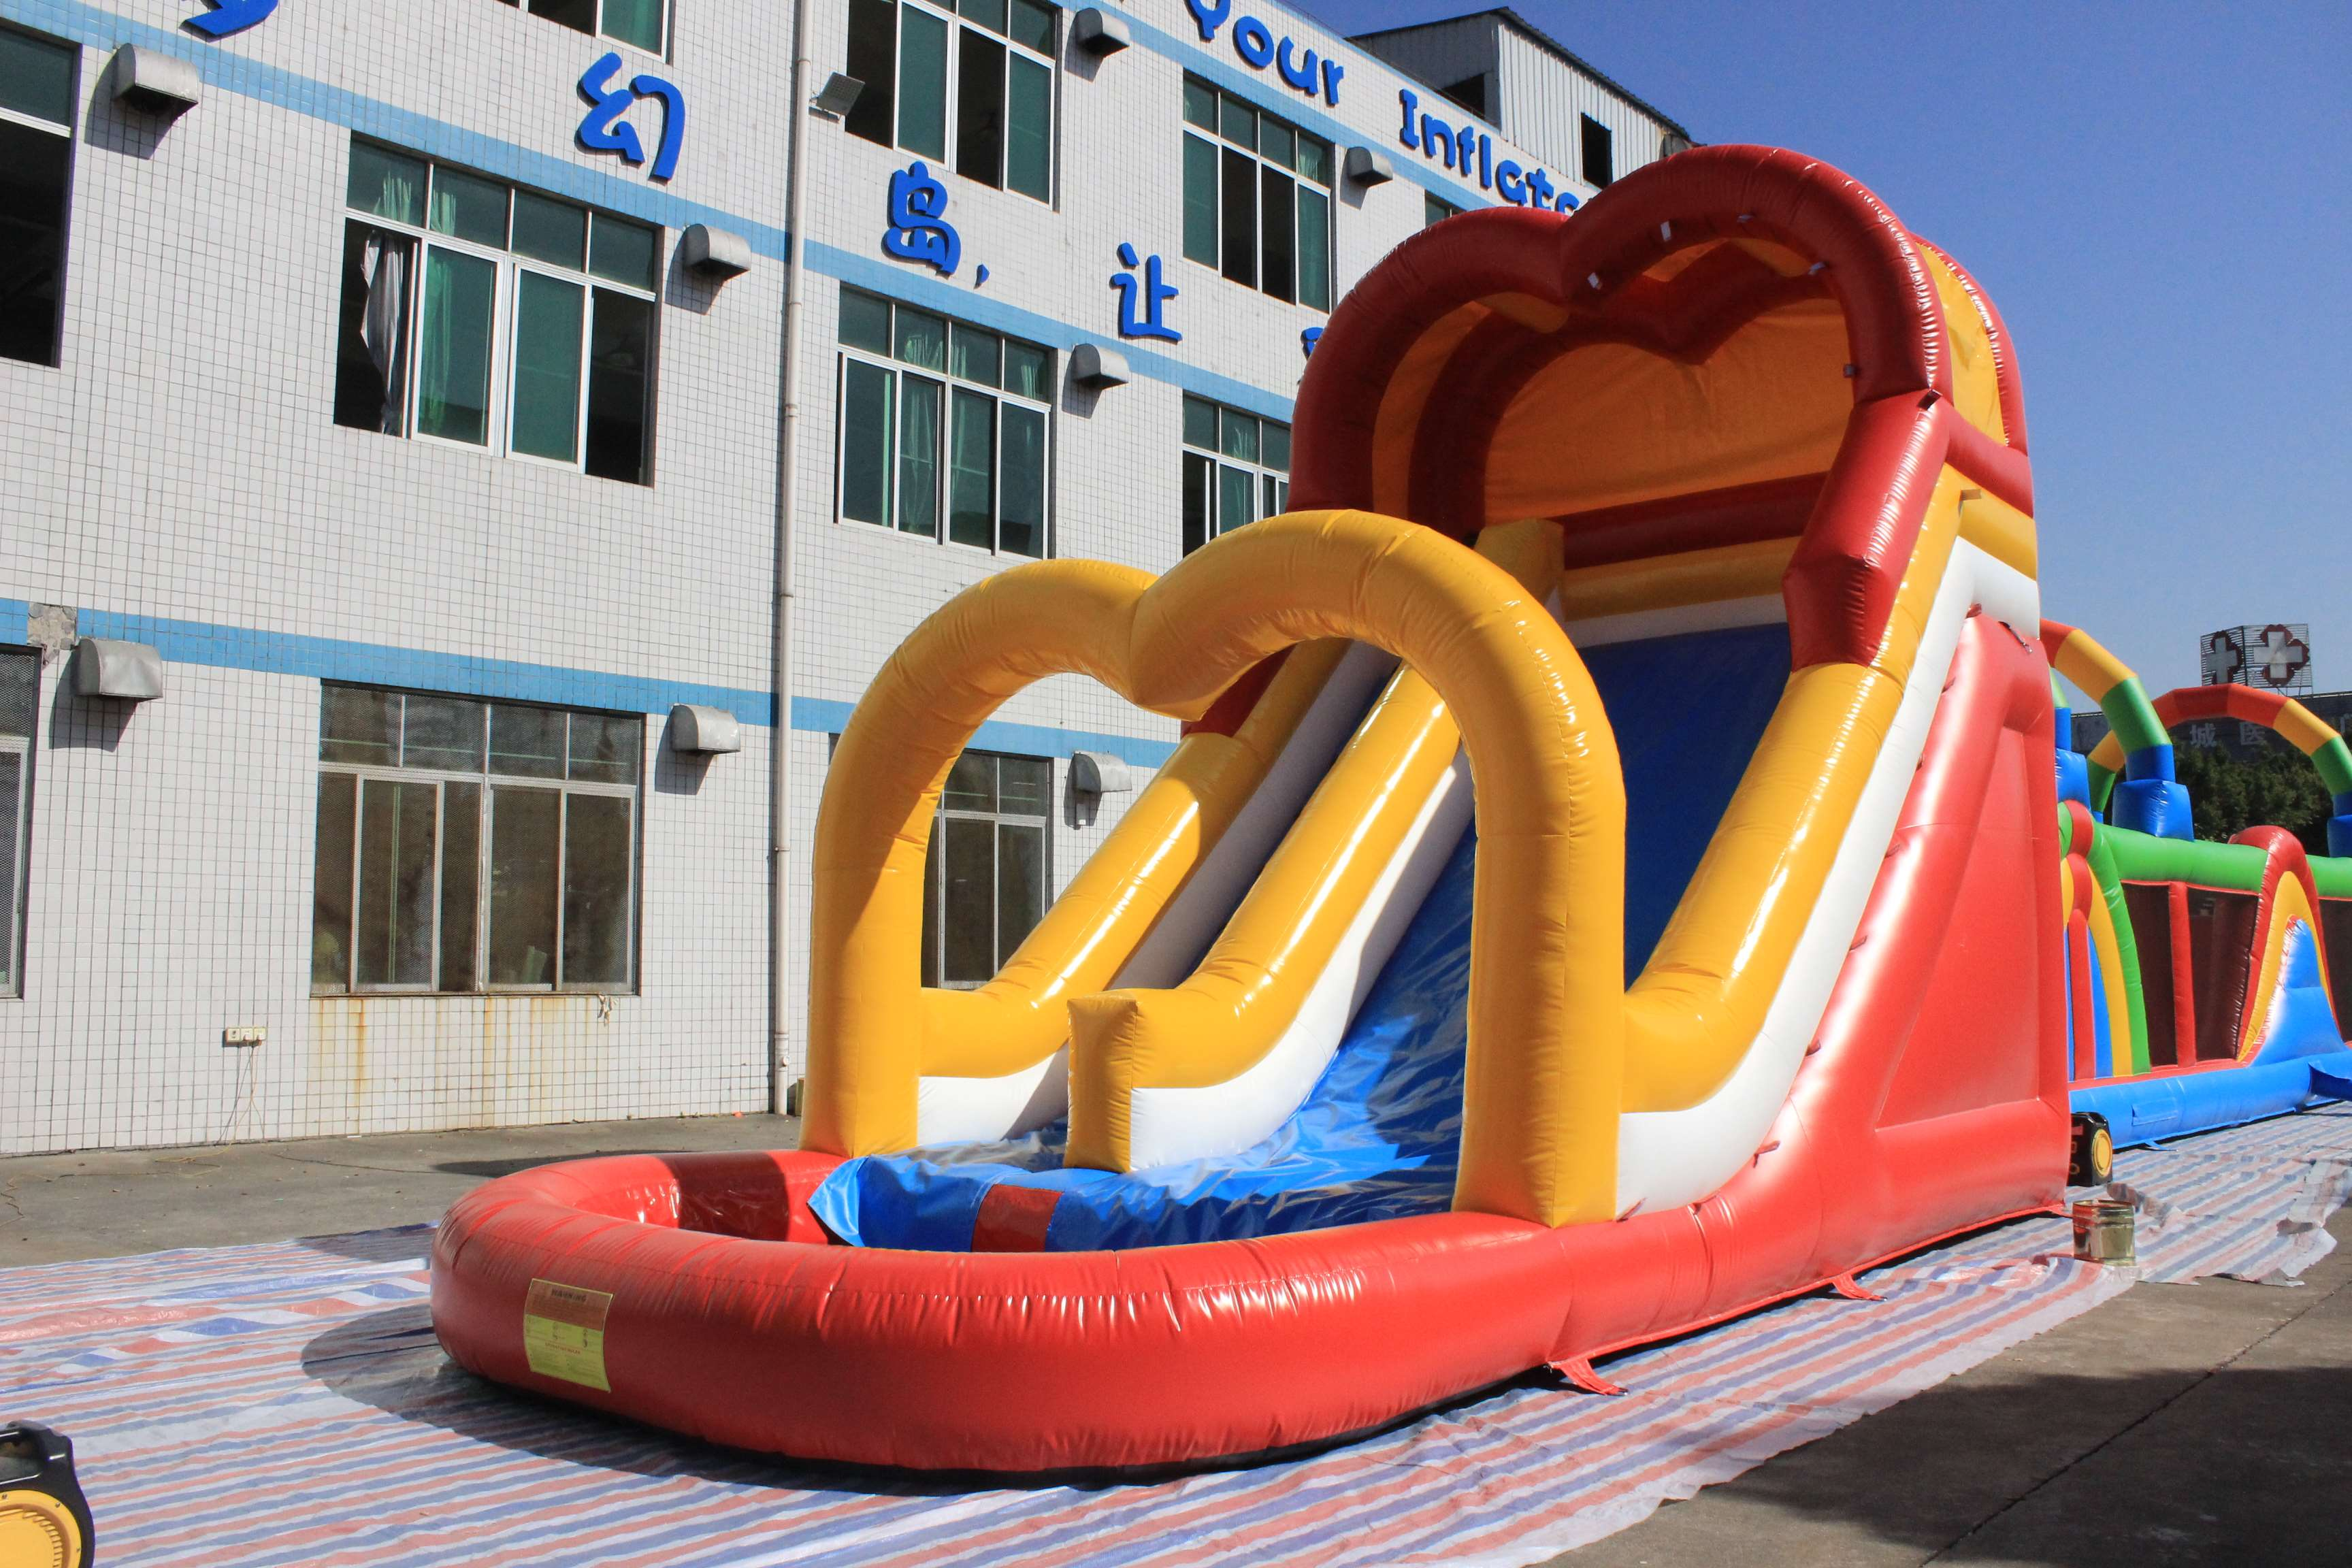 Kids Commercial Giant Adult Inflatable Slide Giant Inflatable Bouncer Slide For Sale